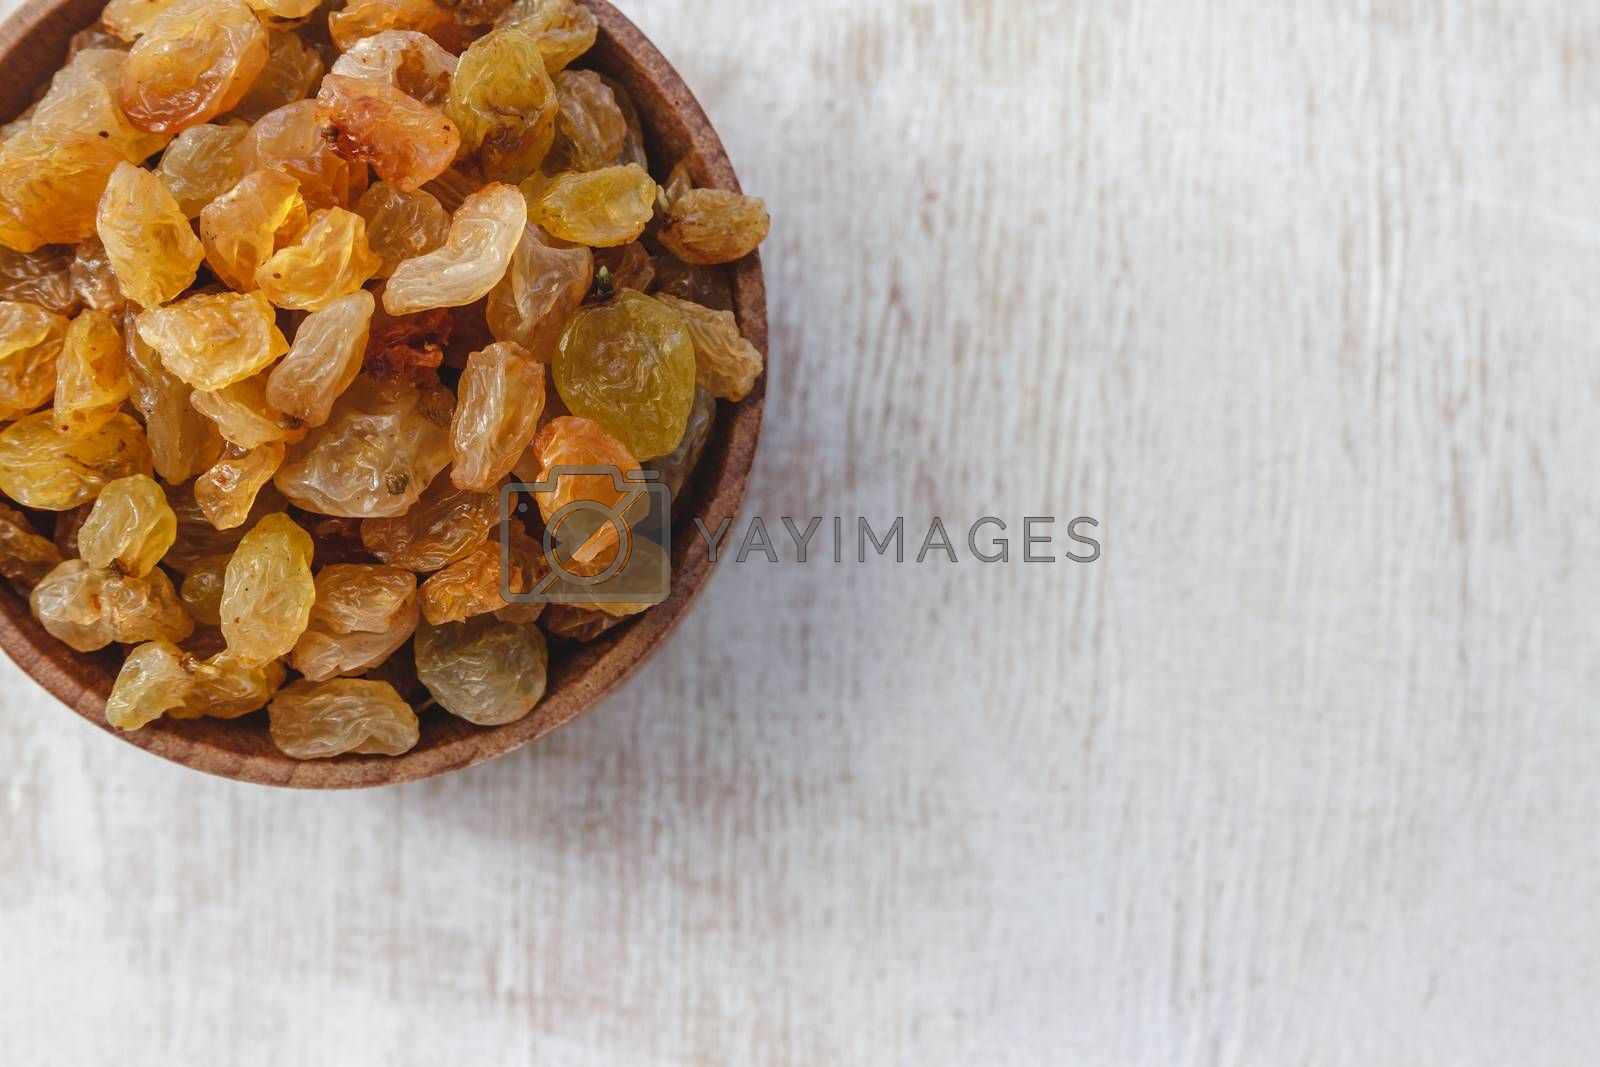 Light yellow raisins in a wooden bowl on a light white backgroun by Tanacha